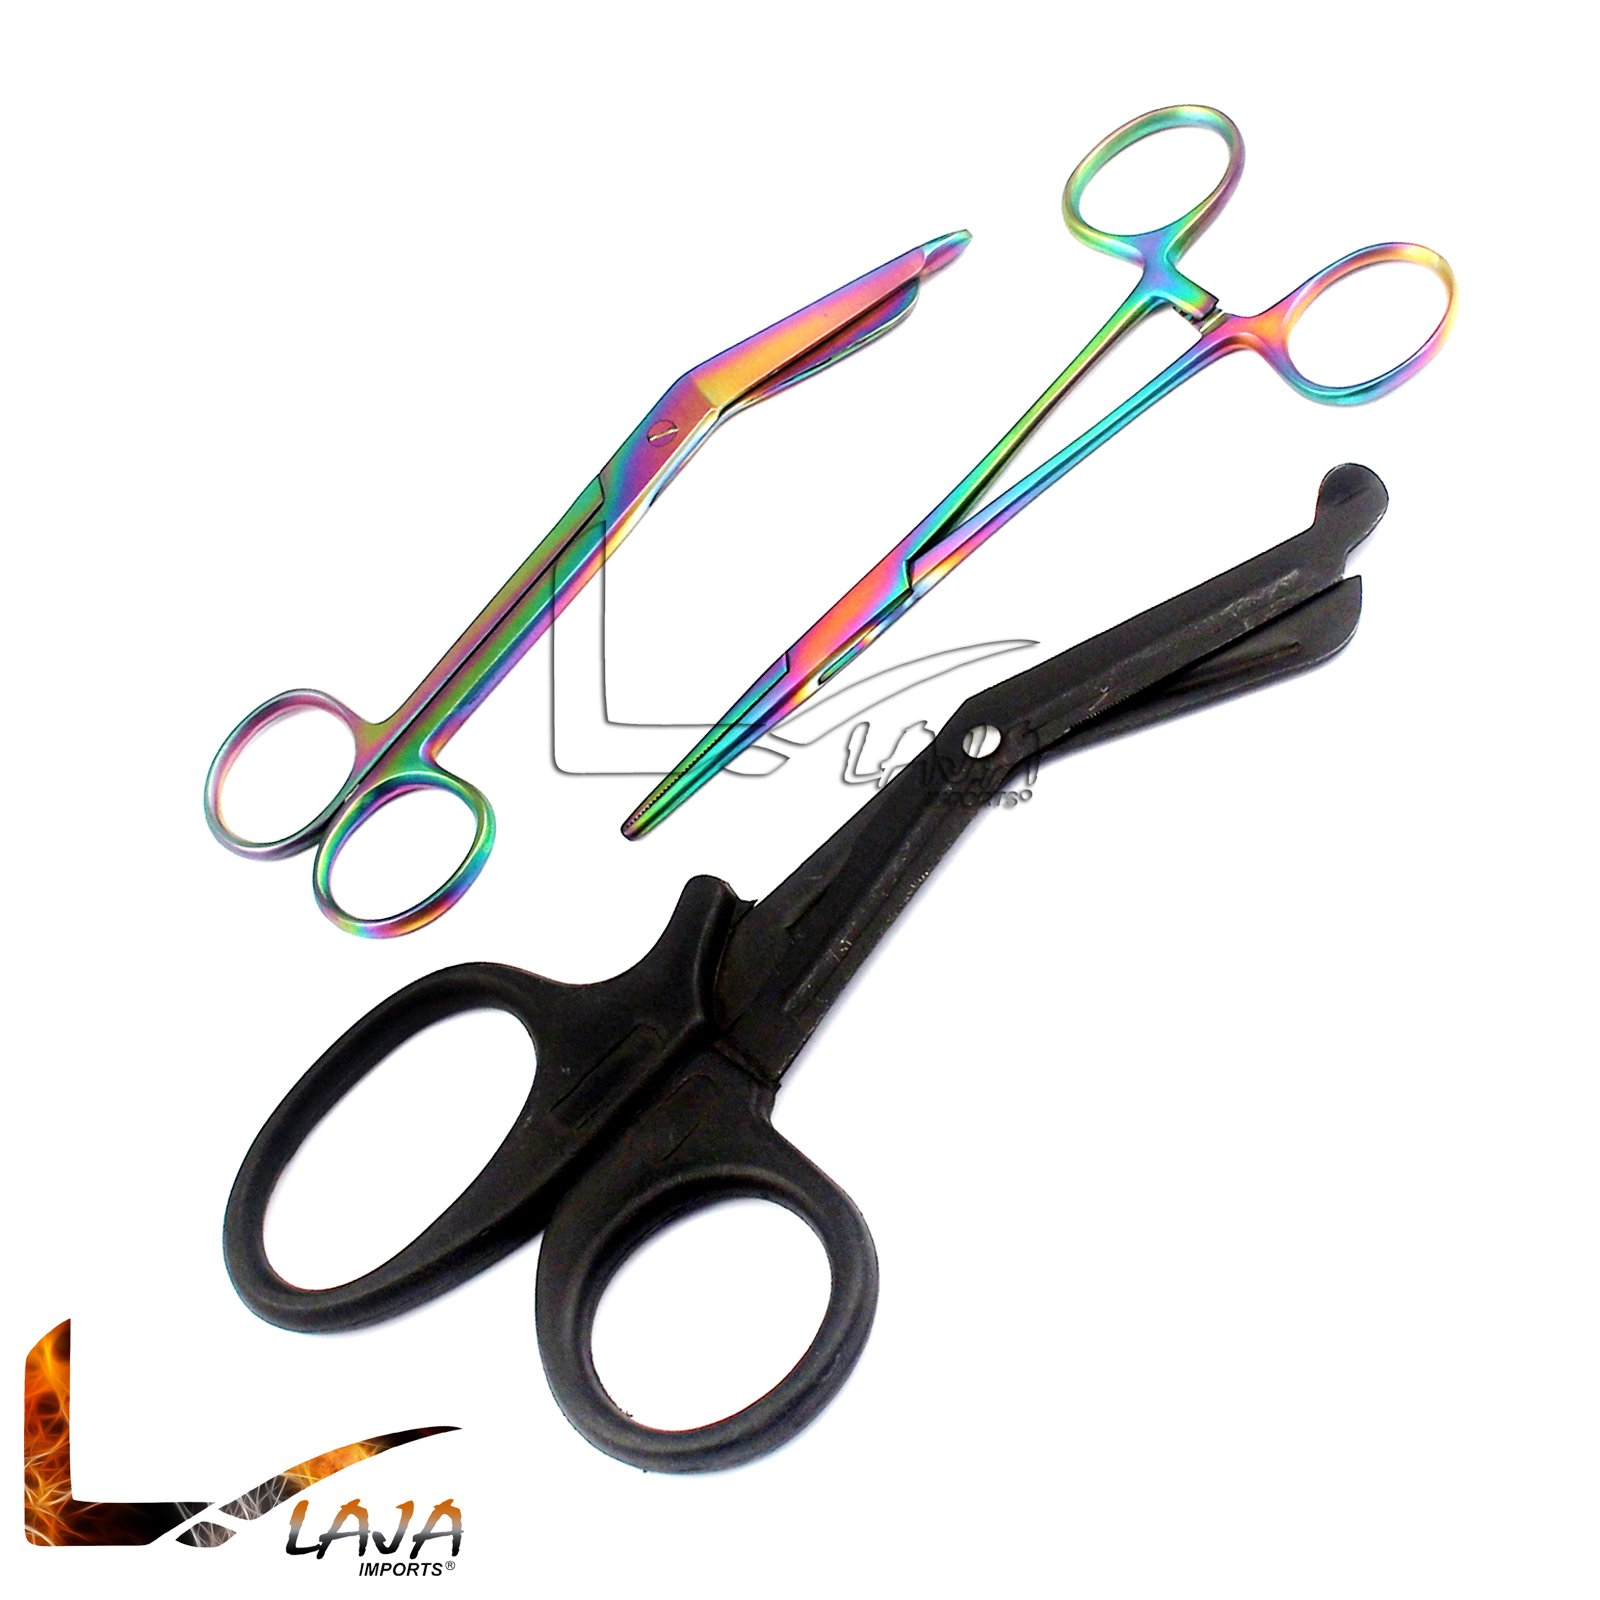 LAJA IMPORTS TITANIUM GALAXY RAINBOW 2 PC 5.5'' ULTIMATE HEMOSTAT STRAIGHT, CURVED AND 7.5'' TACTICAL BLACK EMT TRAUMA SHEAR IDEAL FOR NURSES, EMT, FIREFIGHTER, FISHERMAN, HOBBIEST AND TAXIDERMY